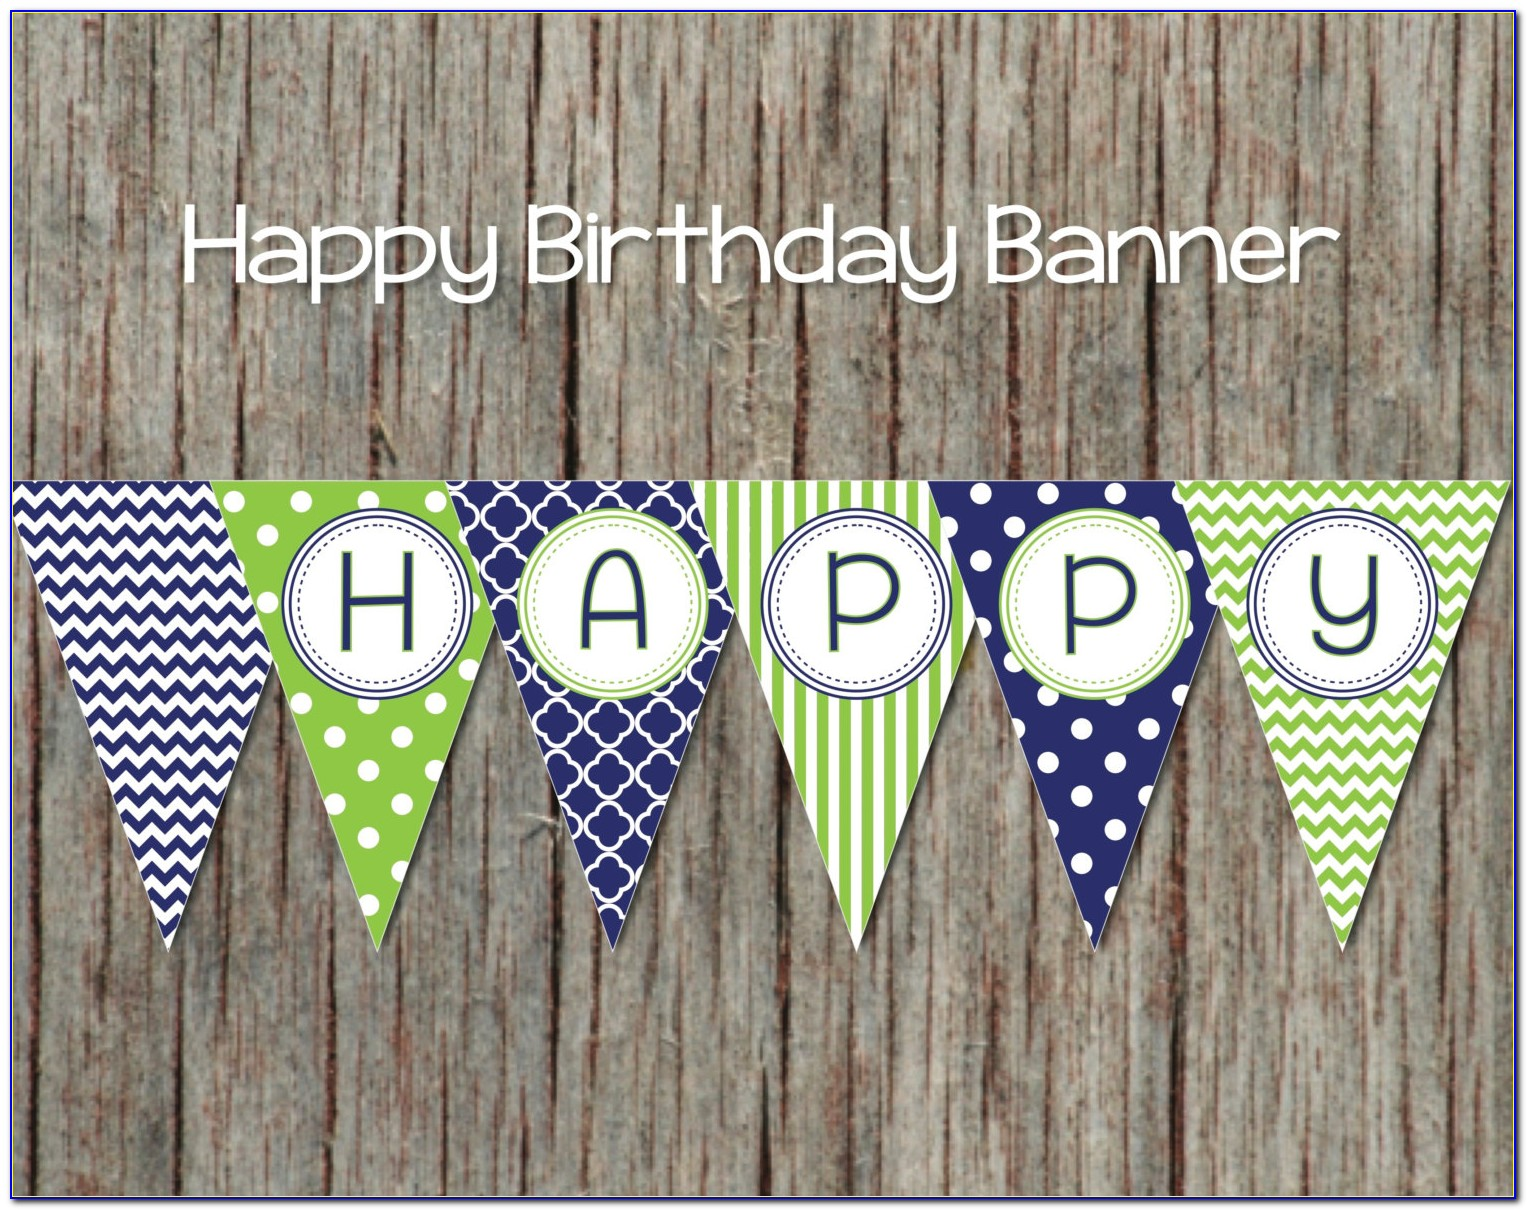 Happy Birthday Banner Template Free Psd